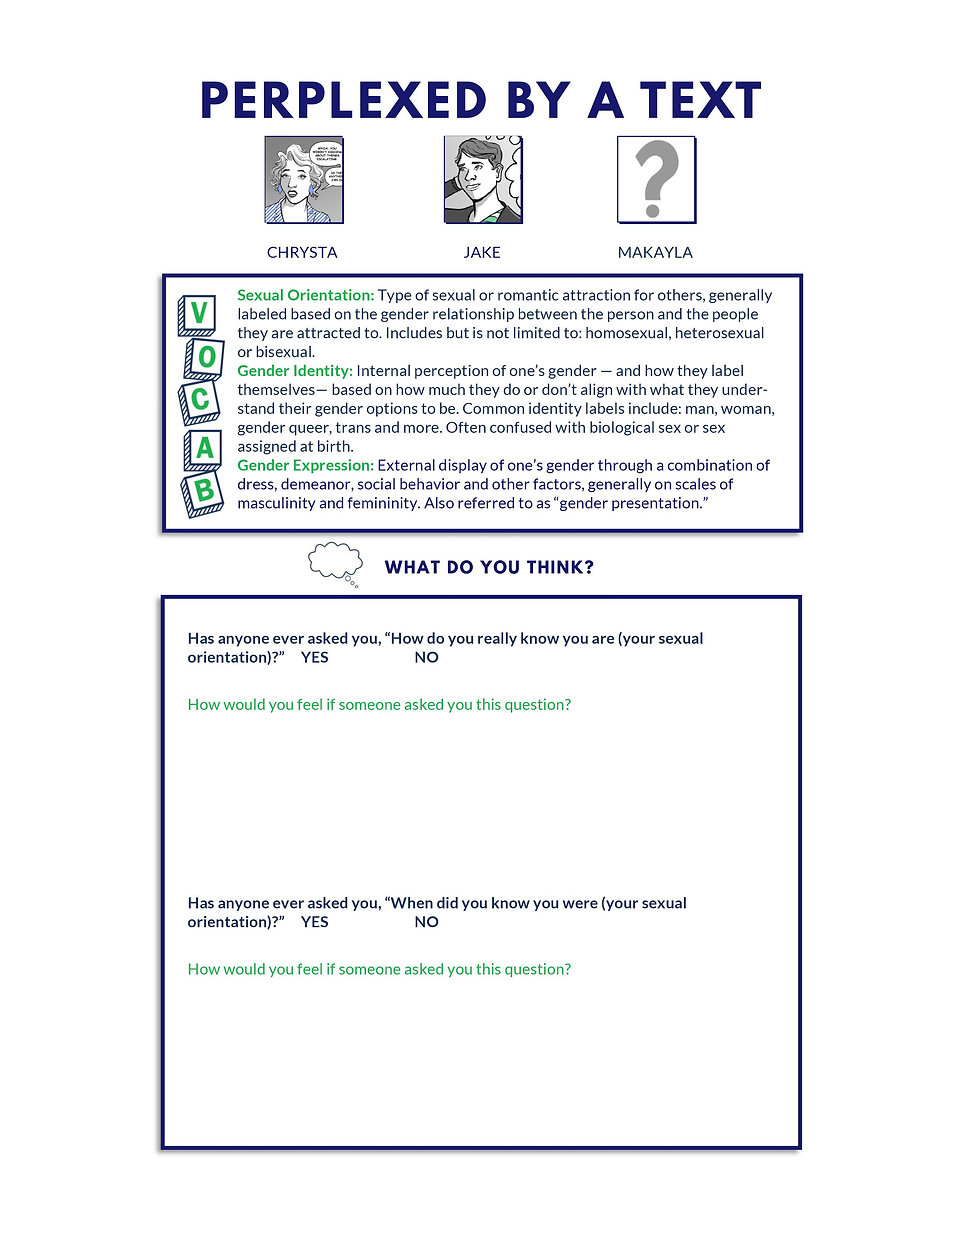 Sexual harassment training activity sheet.